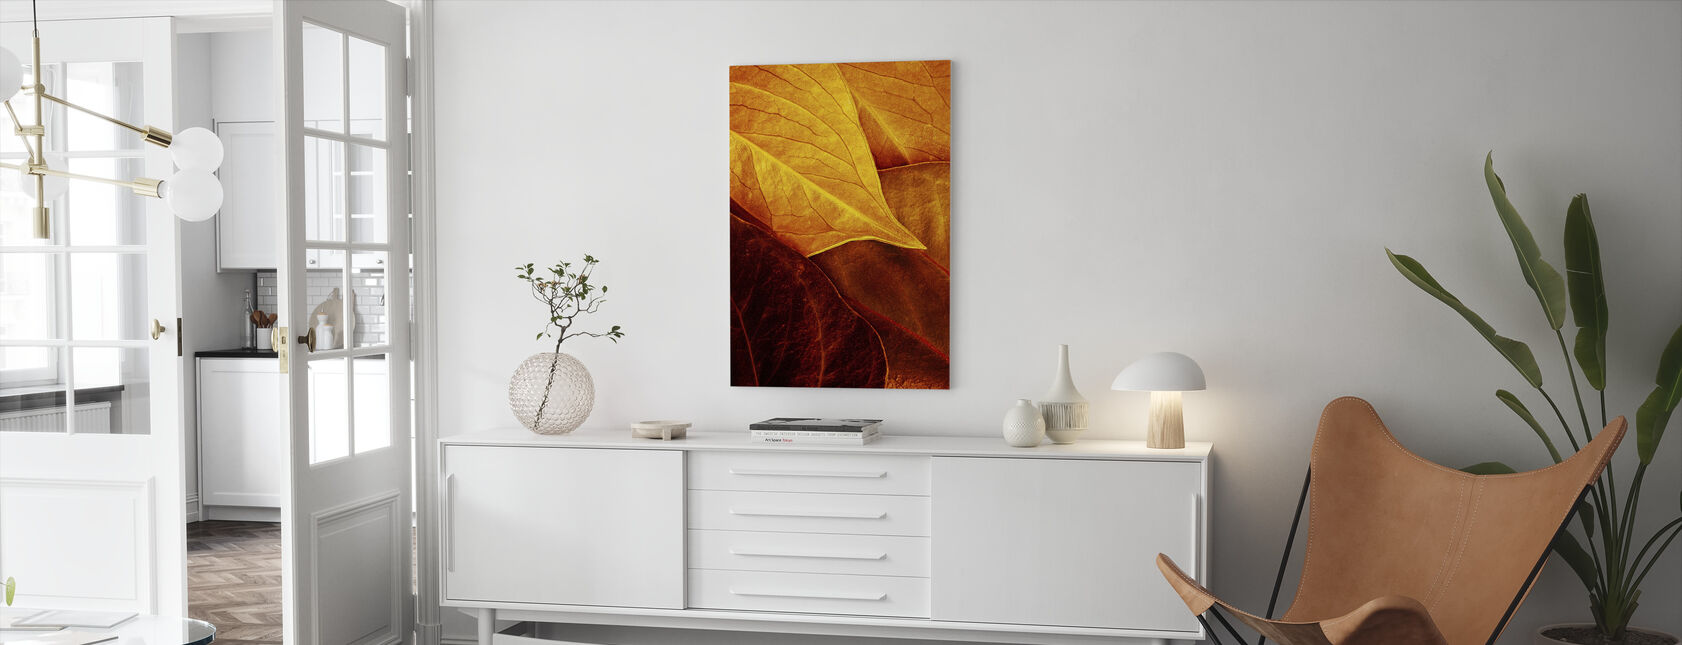 Golden Vessels - Canvas print - Living Room